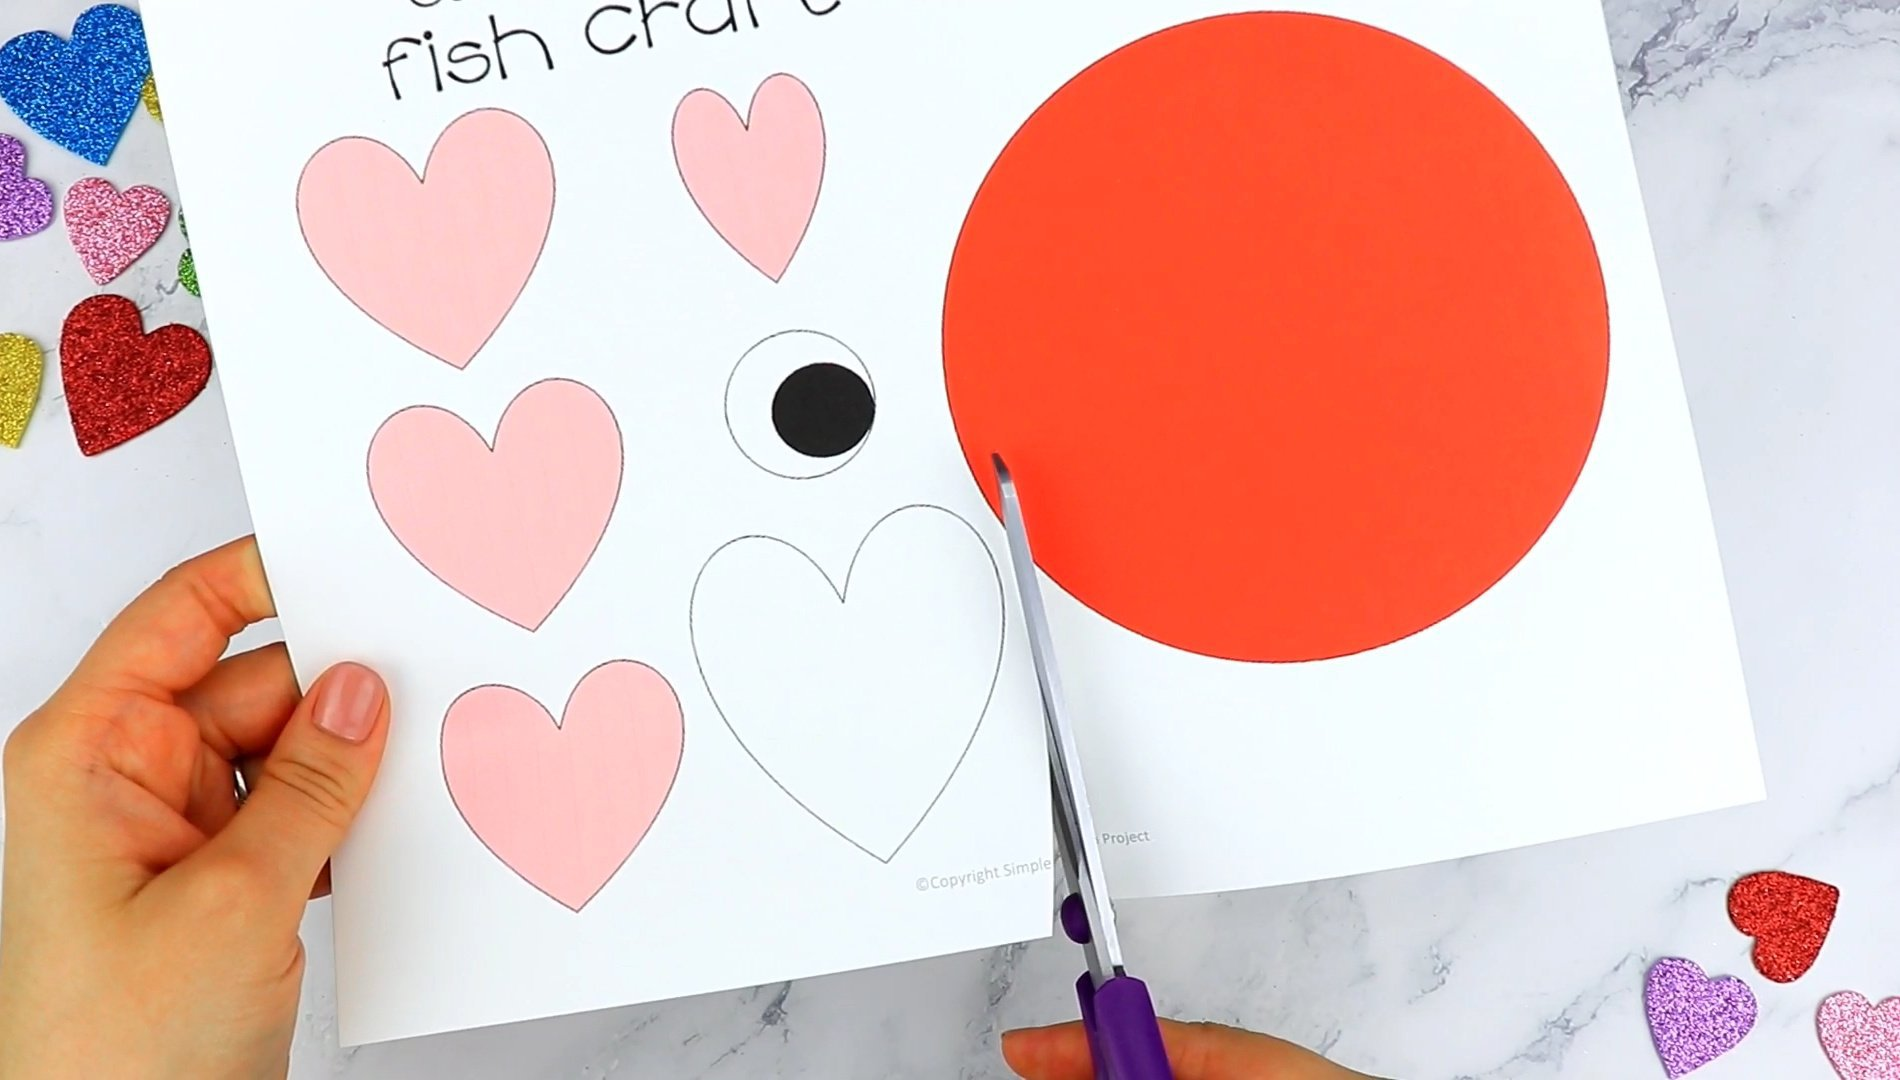 Free Printable Heart Fish Craft for Preschoolers toddlers and kindergartners